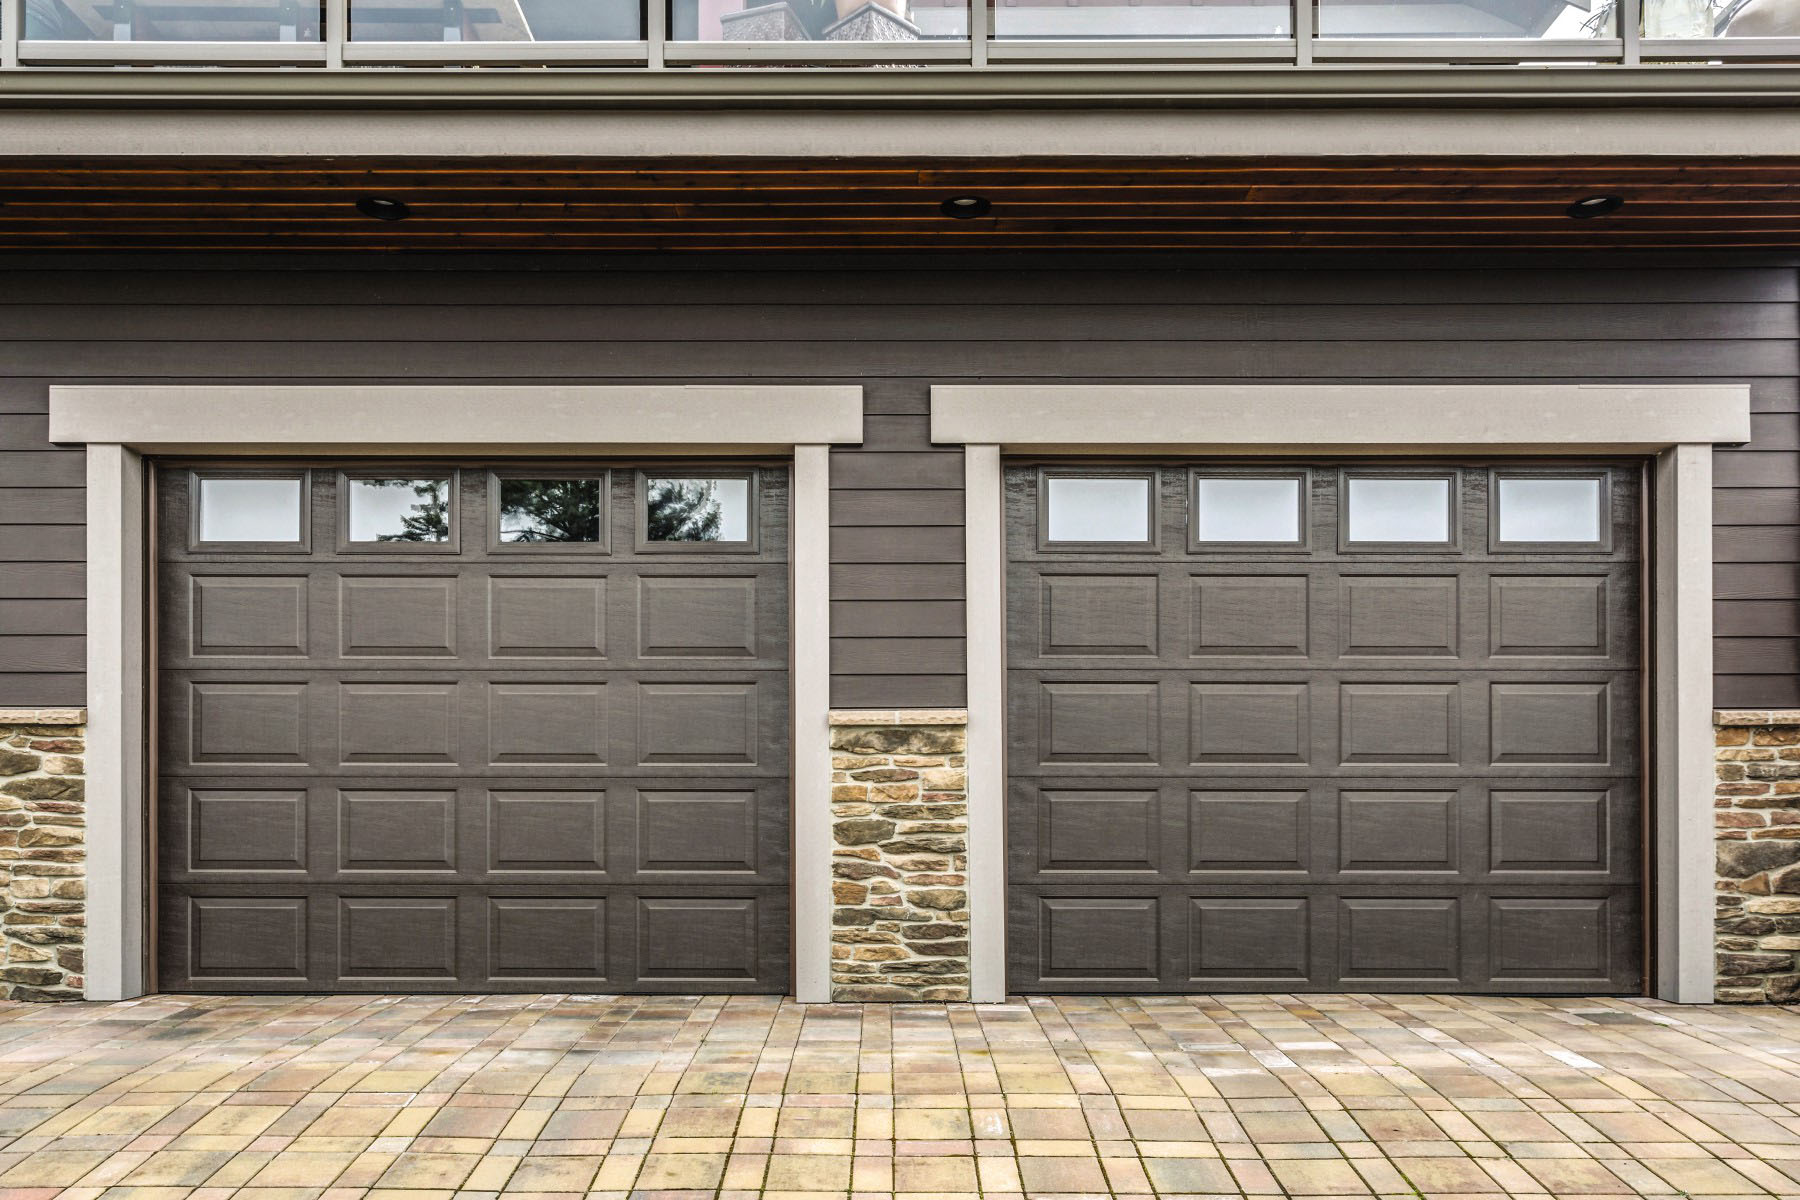 Repair Or Replace? How To Determine When Your Garage Needs To Go